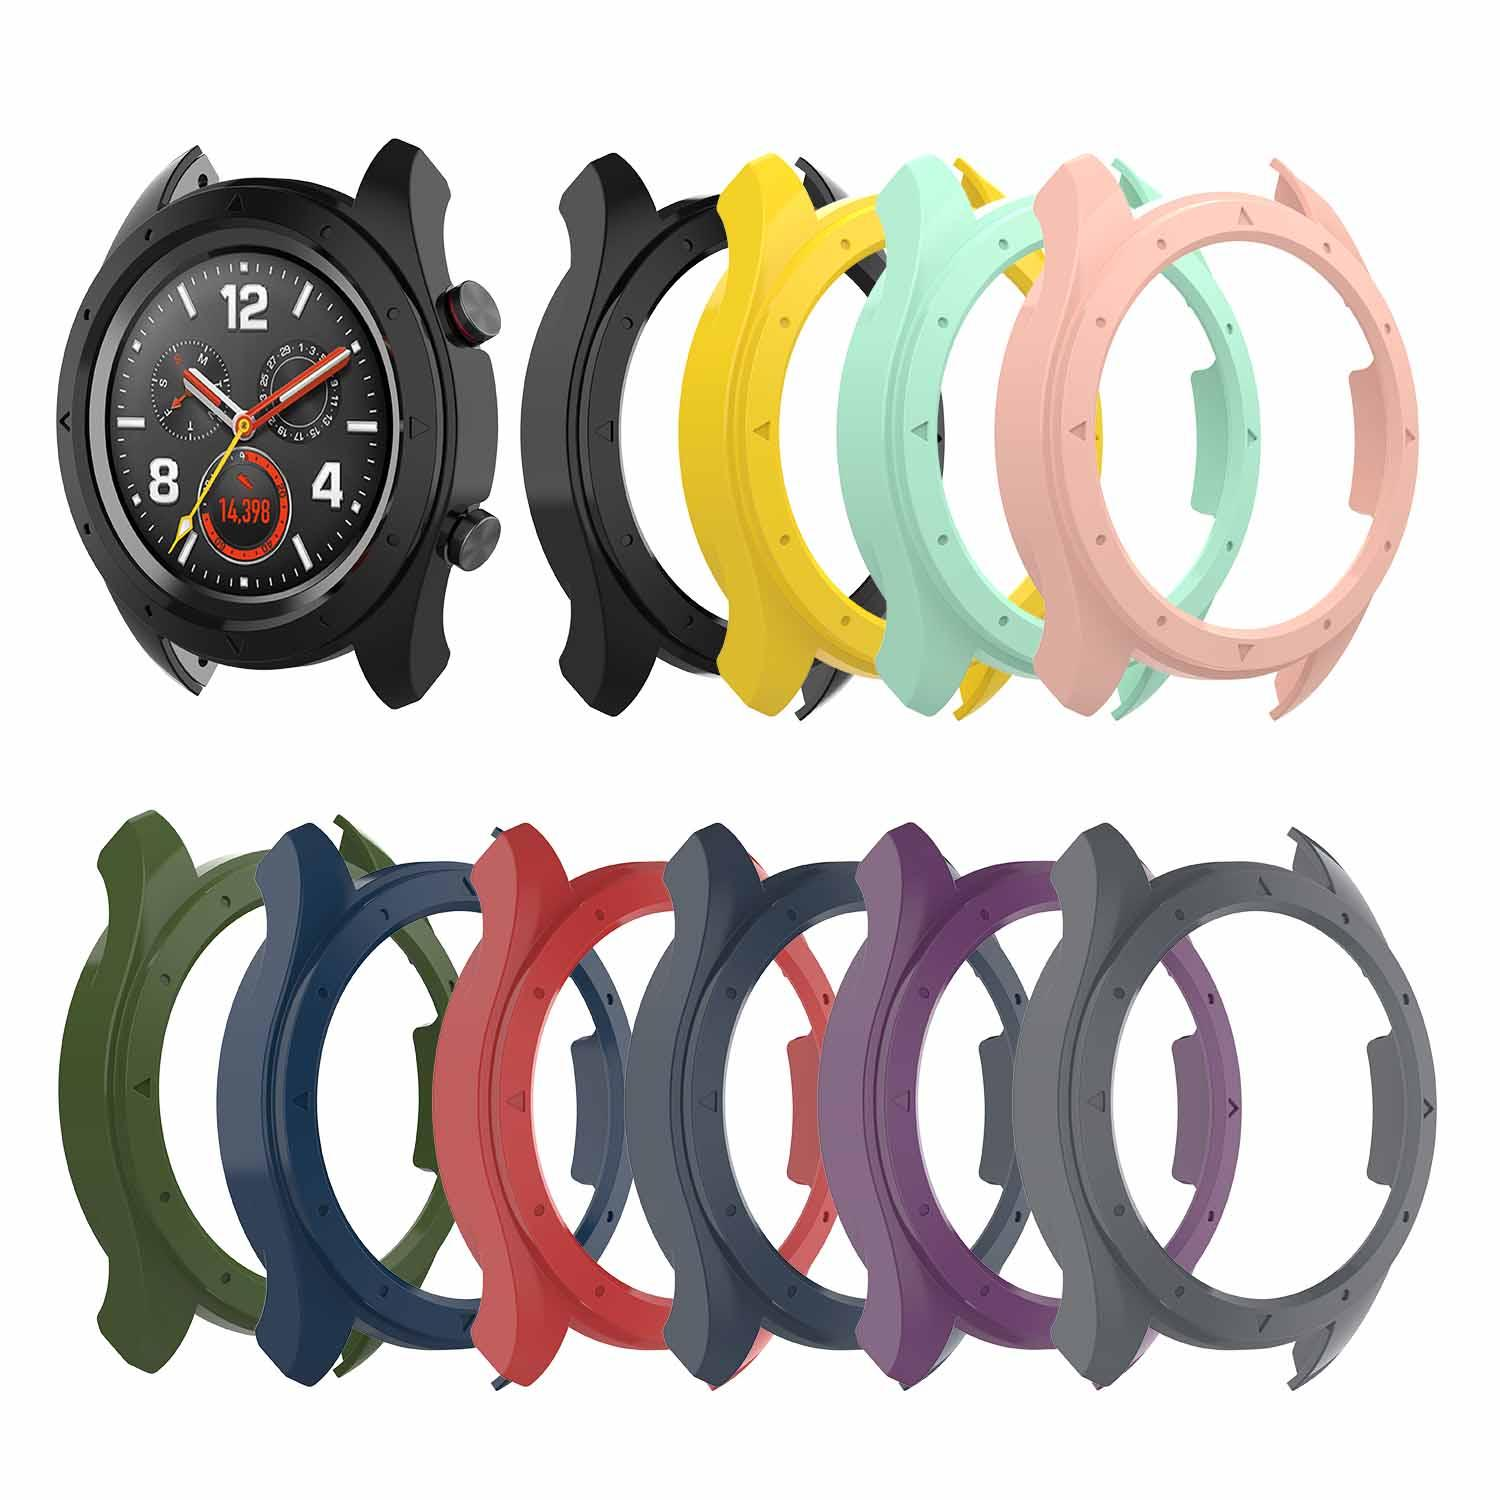 Bakeey Colorful Protector Case Watch Case Full Protection for Huawei magic Smart Watch